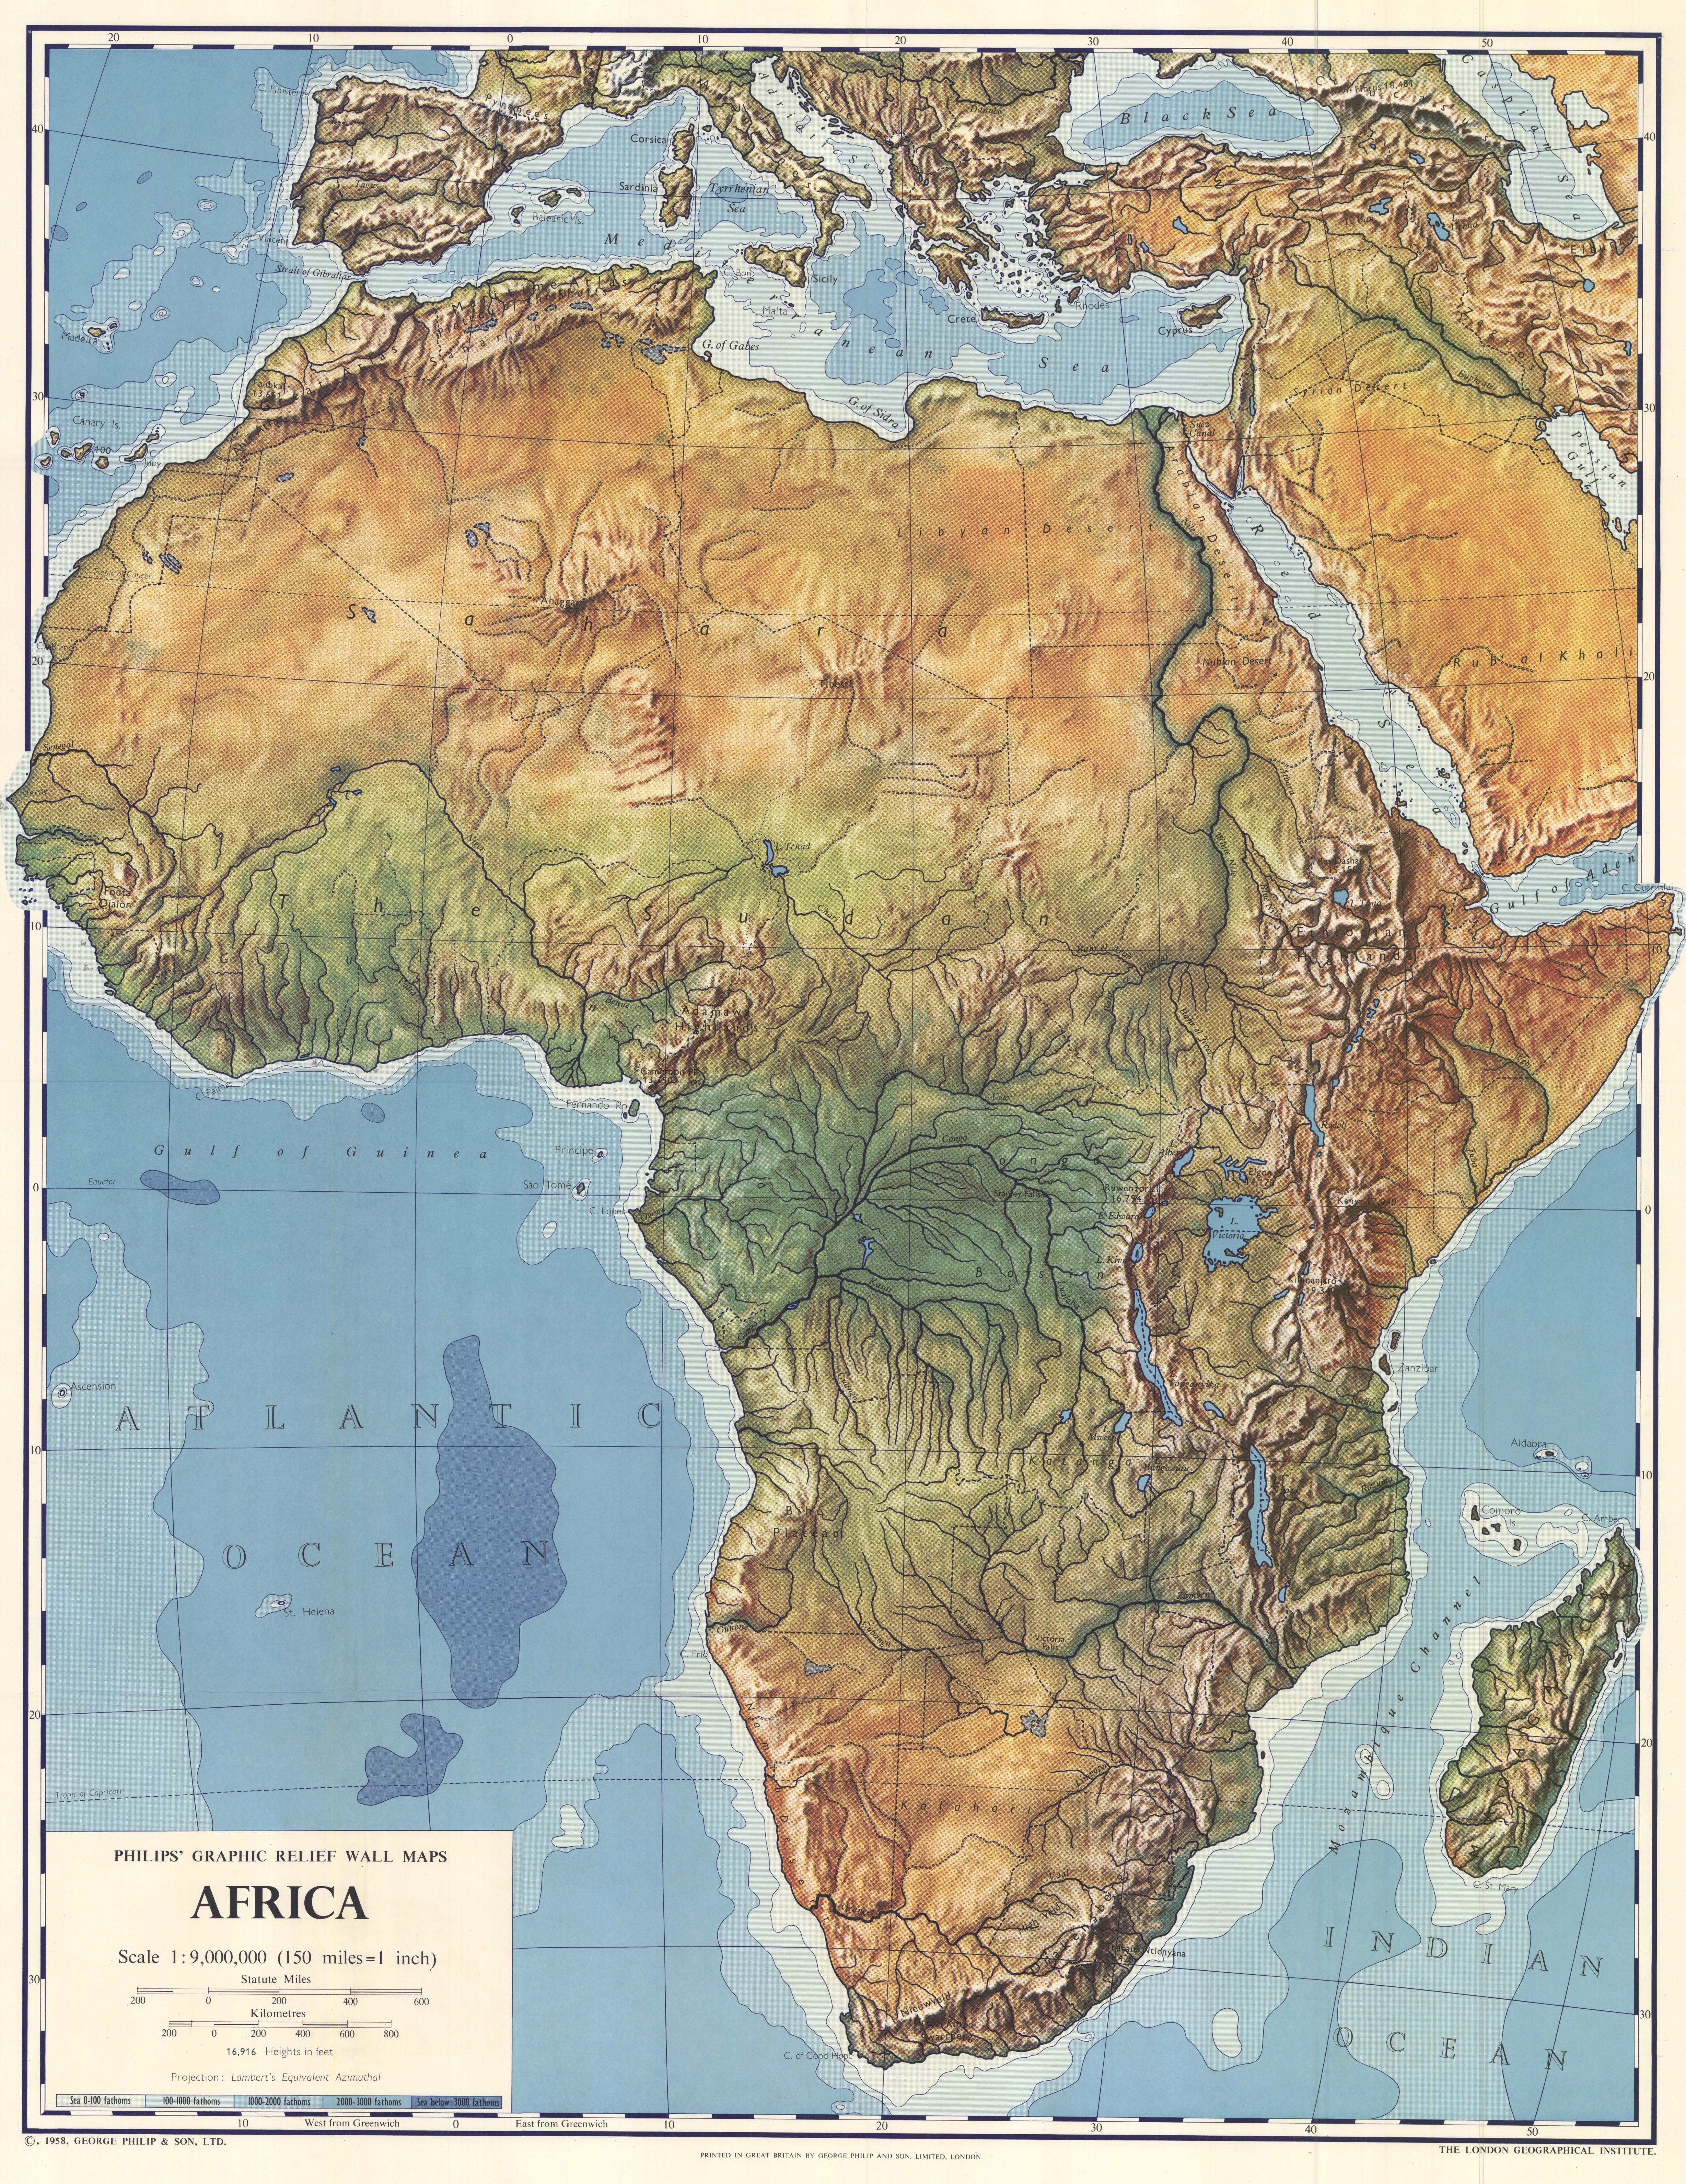 Map Of Africa With Landforms Africa physical map 1958. (4913×6365) | India world map, Map